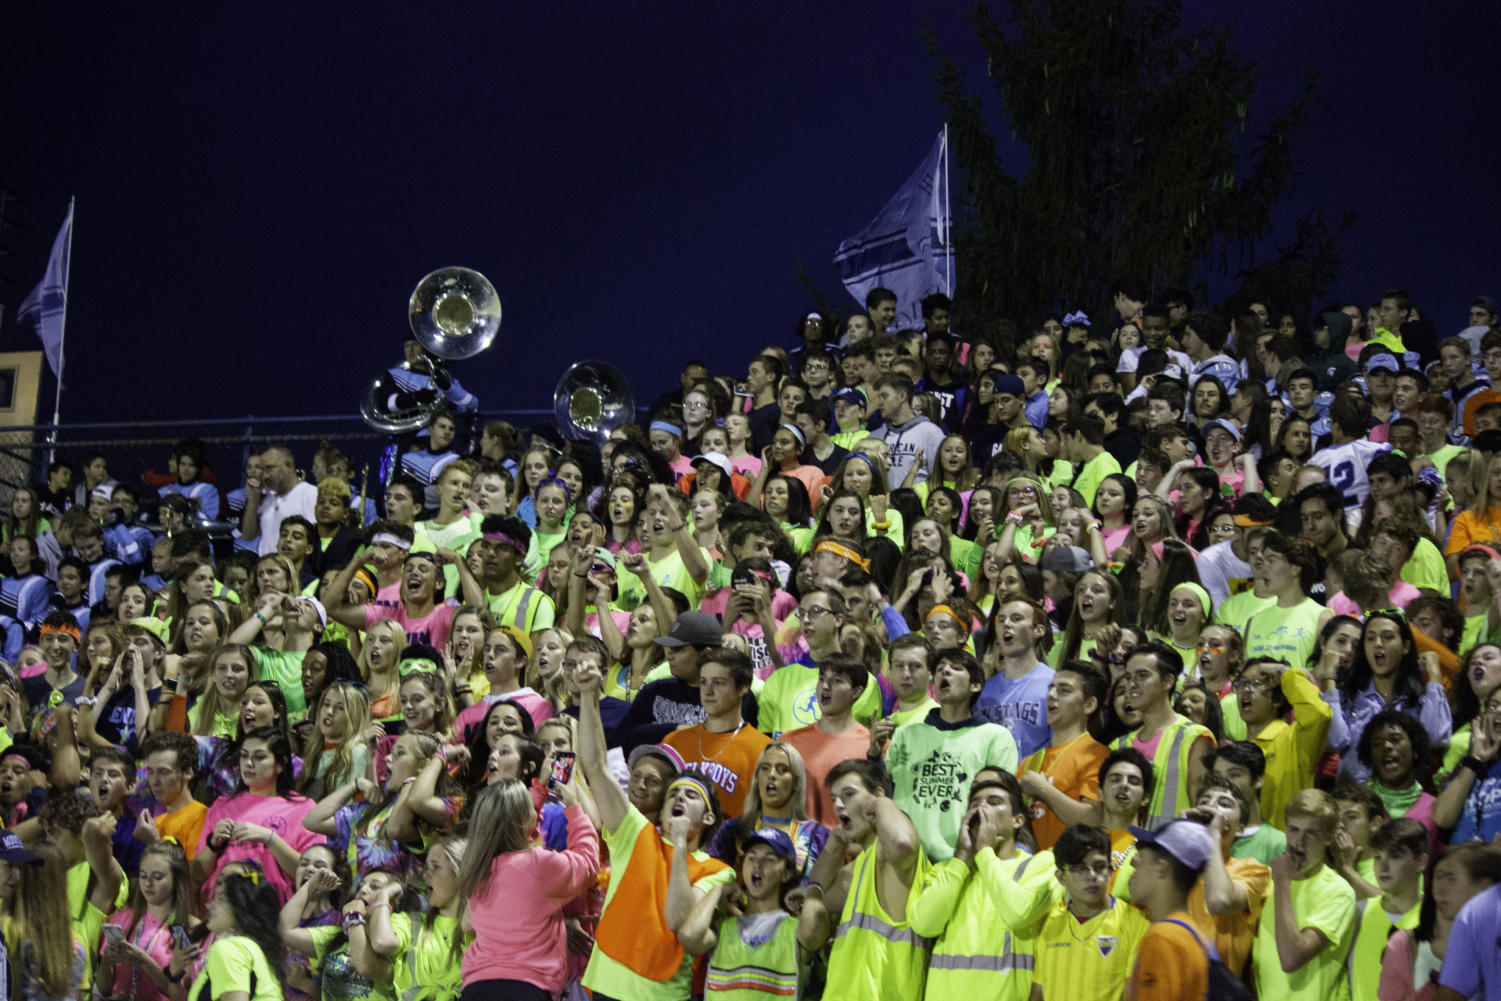 The theme for the first game of the 2019 season was neon, however it was not bright enough theme for the home opener.